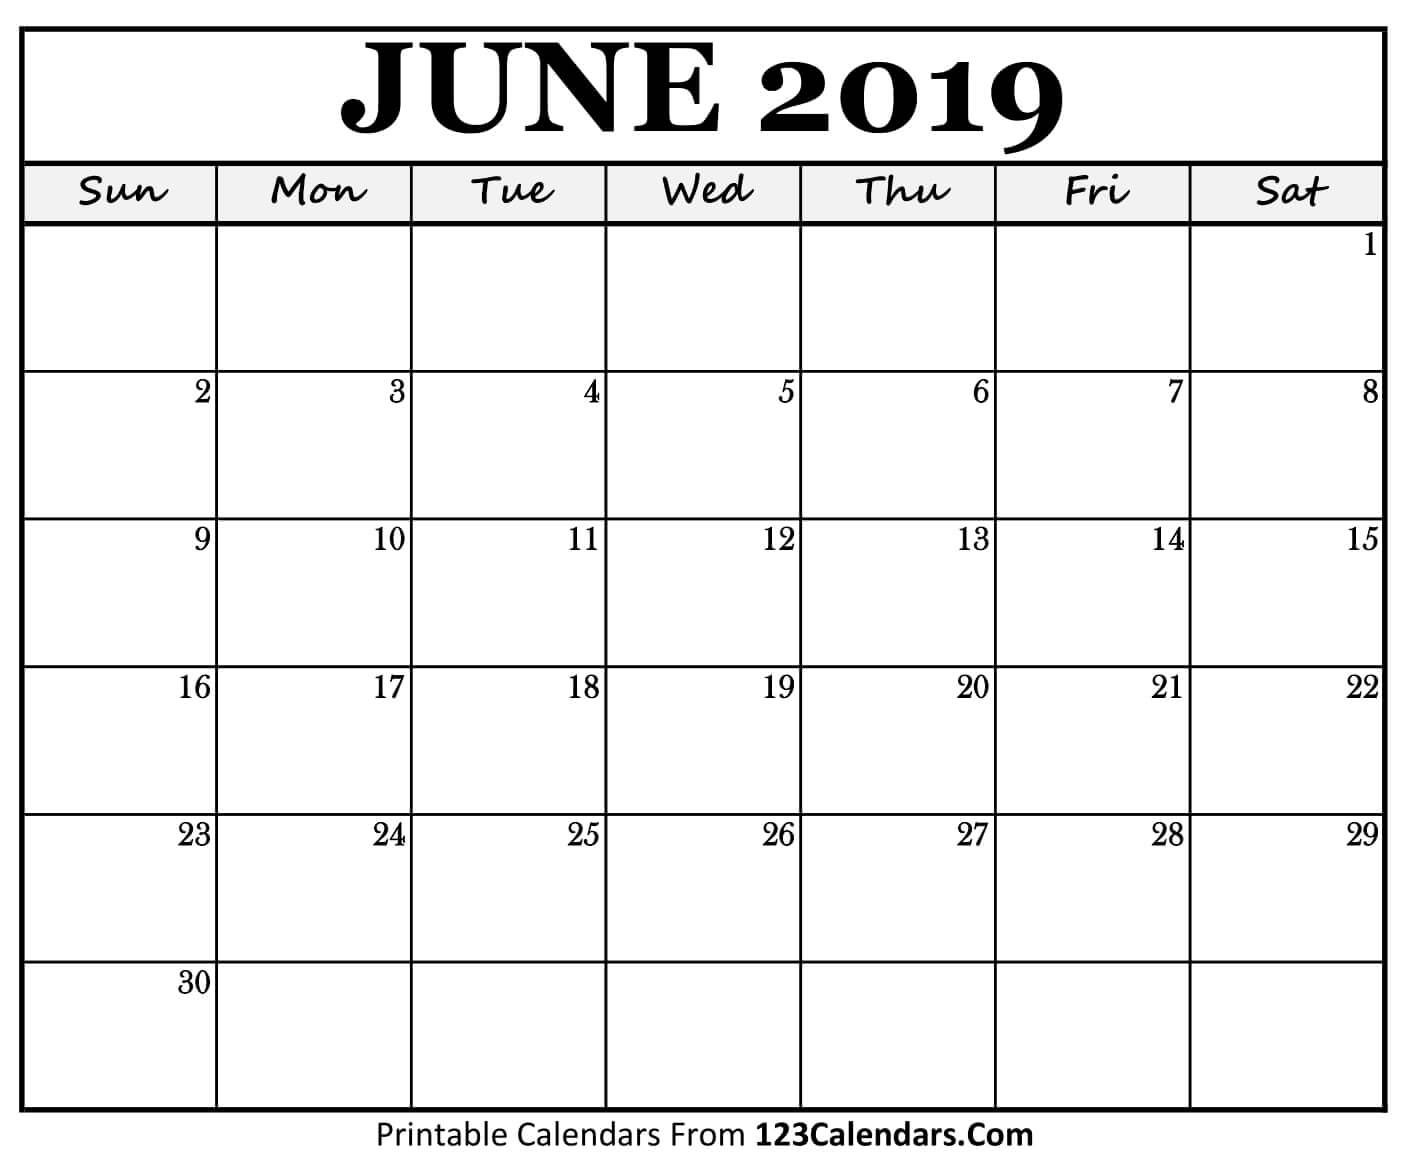 Printable June 2019 Calendar Templates – 123Calendars Calendar 2019 June